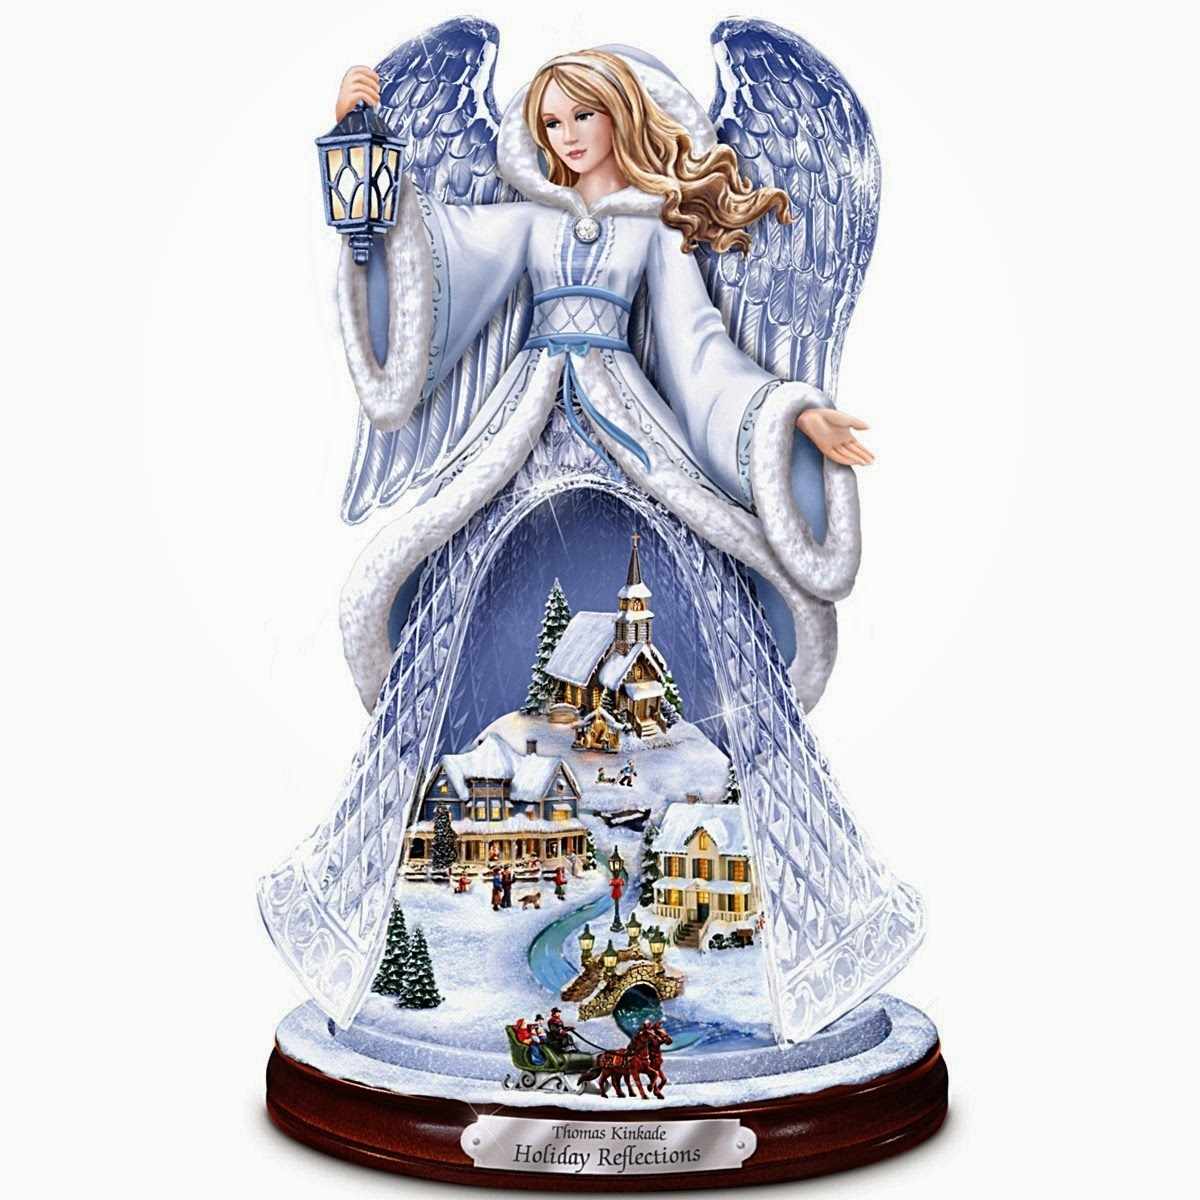 http://www.amazon.com/Kinkade-Reflections-Sculpture-Bradford-Exchange/dp/B005VONAR0%3FSubscriptionId%3D14H876SFAKFS0EHBYQ02%26tag%3Dhubpages-20%26linkCode%3Dxm2%26camp%3D2025%26creative%3D165953%26creativeASIN%3DB005VONAR0